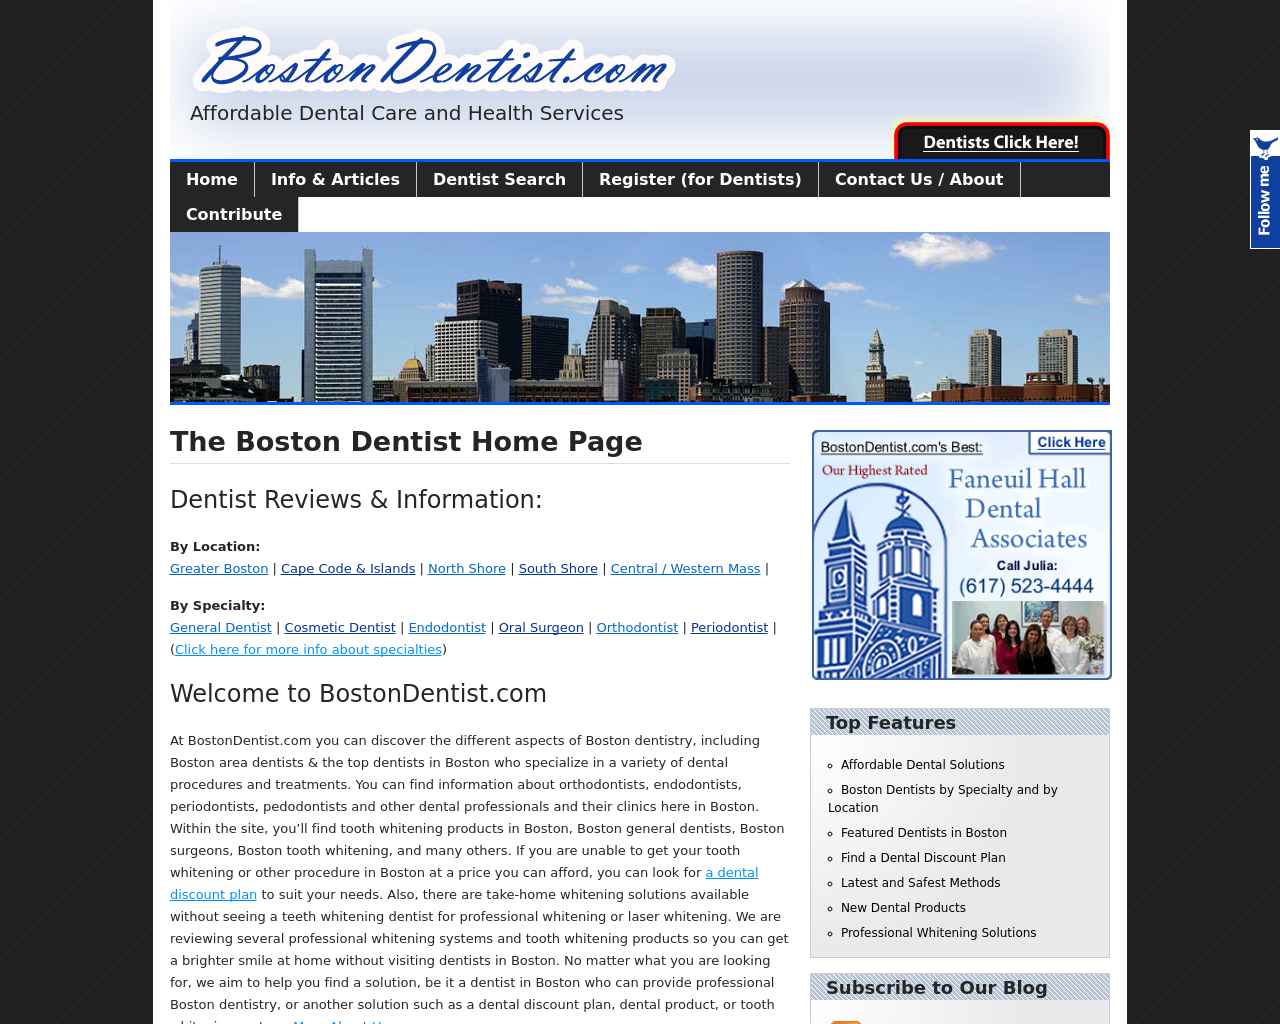 BostonDentist.com-Advertising-Reviews-Pricing